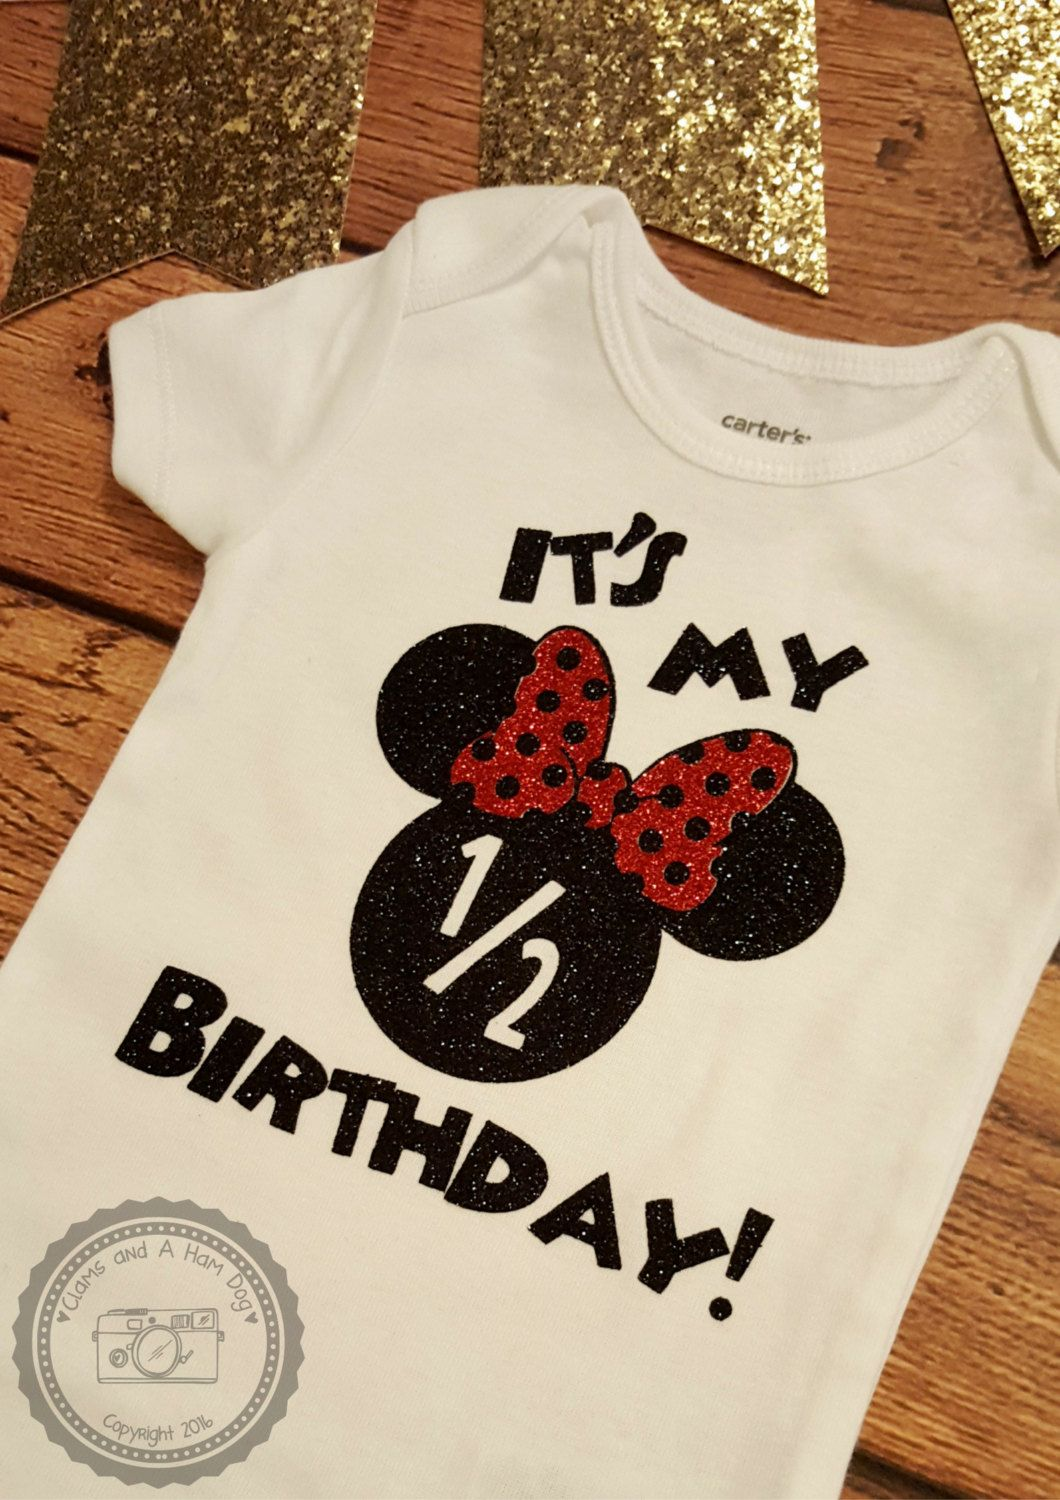 Glitter Minnie Mouse ONESIE Half Birthday Tshirt Baby Girl Shower Gift Funny Shirt For Toddler Infant 6 Month 022 By ClamsAndaHamDog On